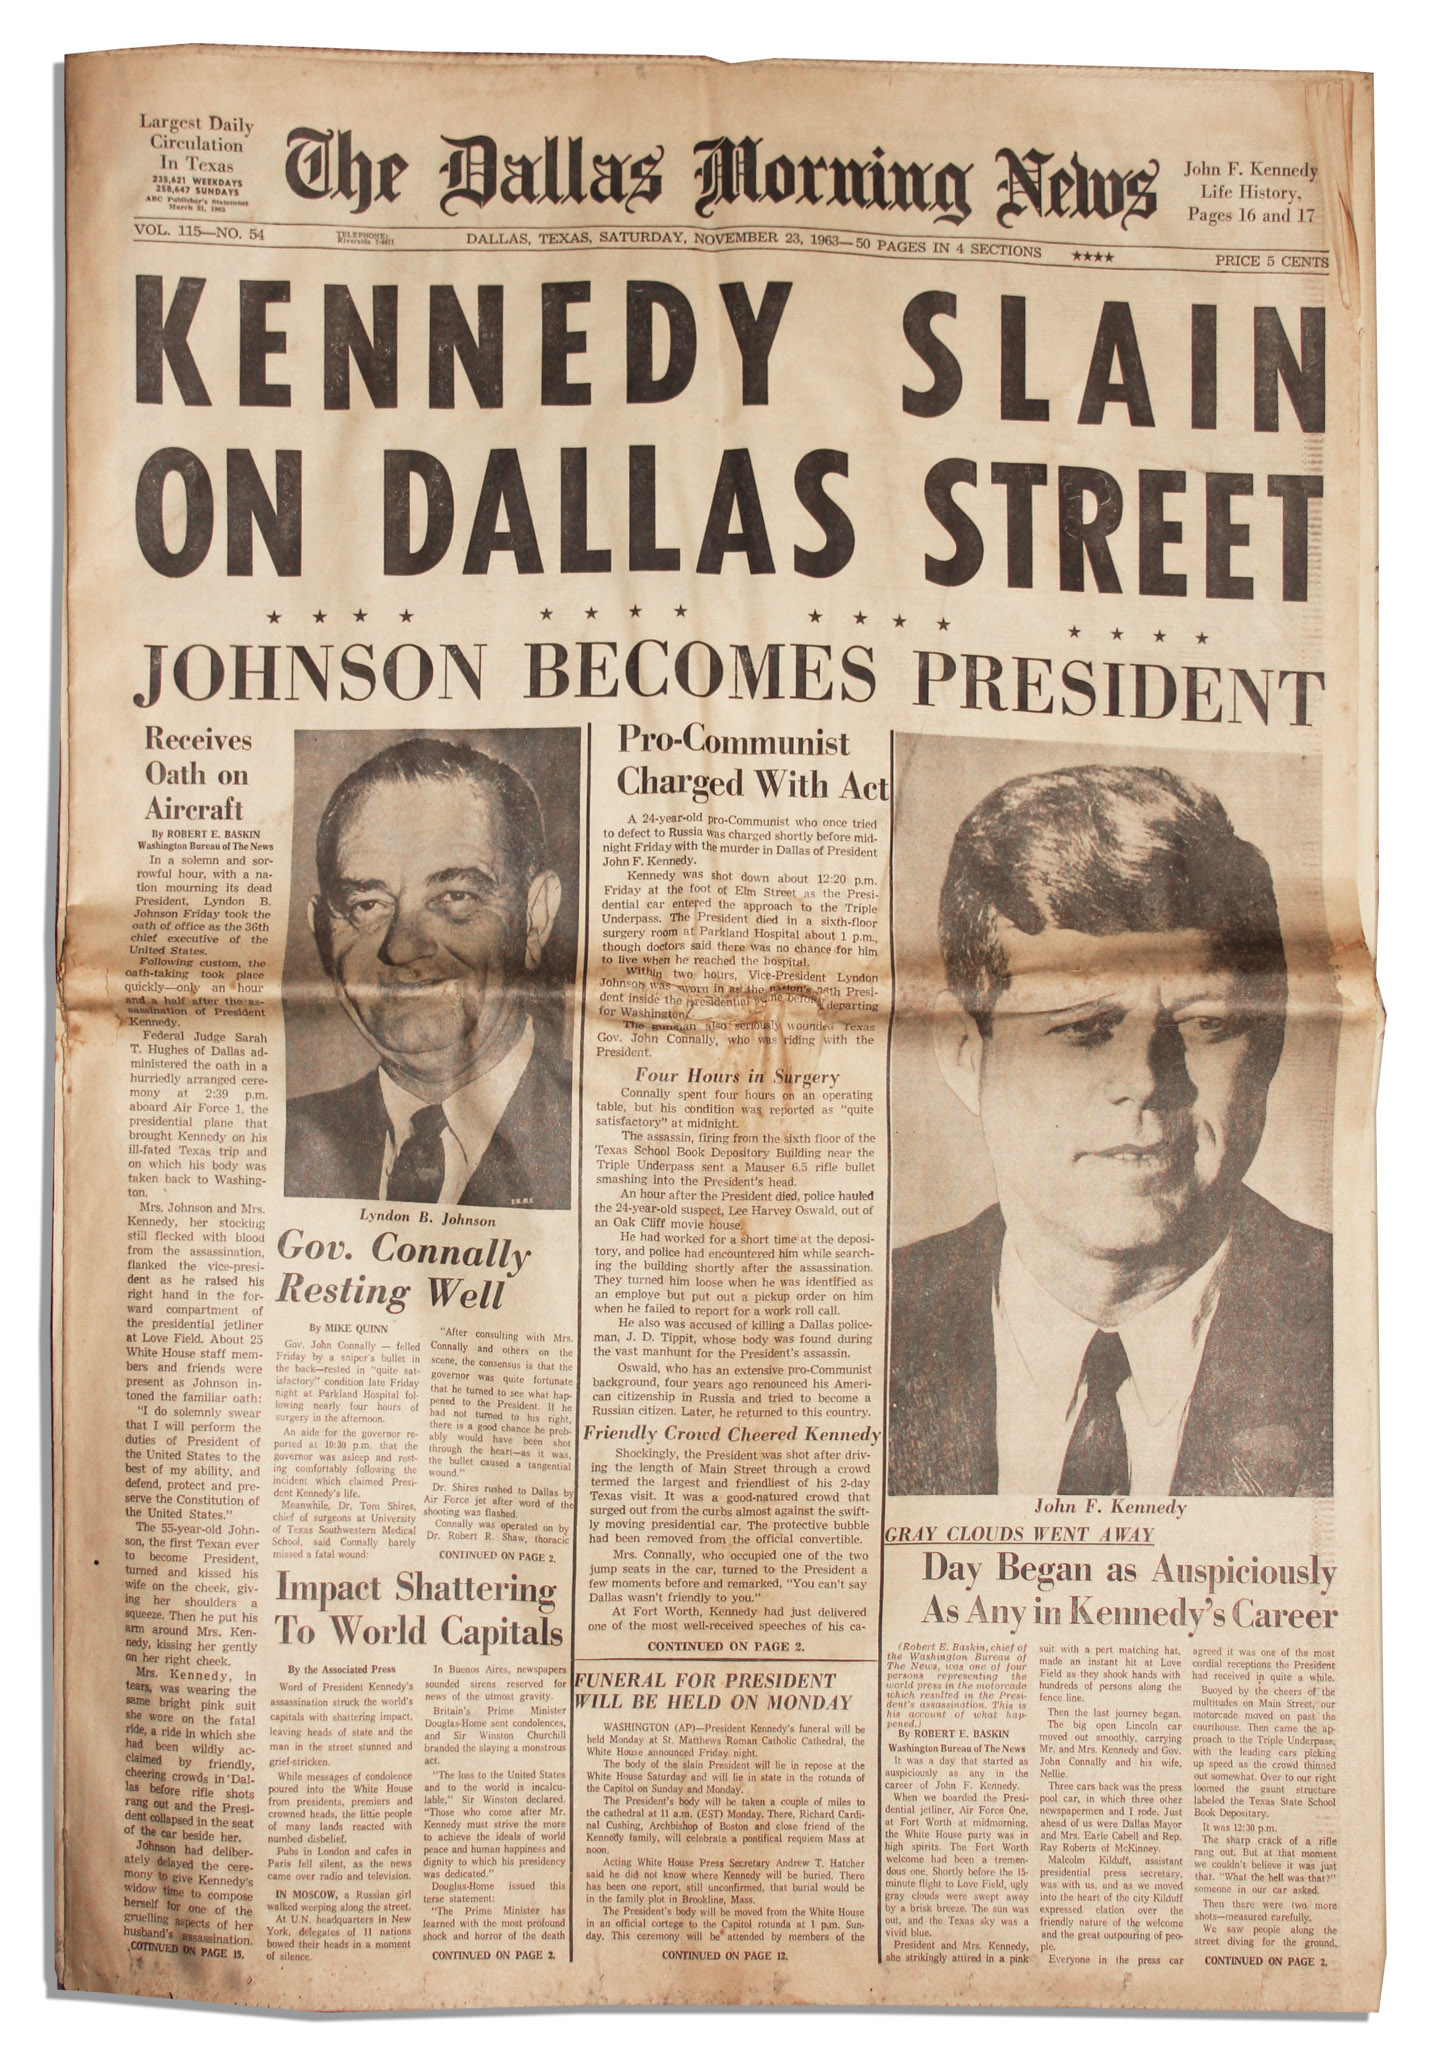 a paper on the assassination of robert kennedy More essay examples on speech rubric it was 4th april 1968, one of the most tragic days in the history of america when robert f kennedy, younger brother of slain president john f kennedy.